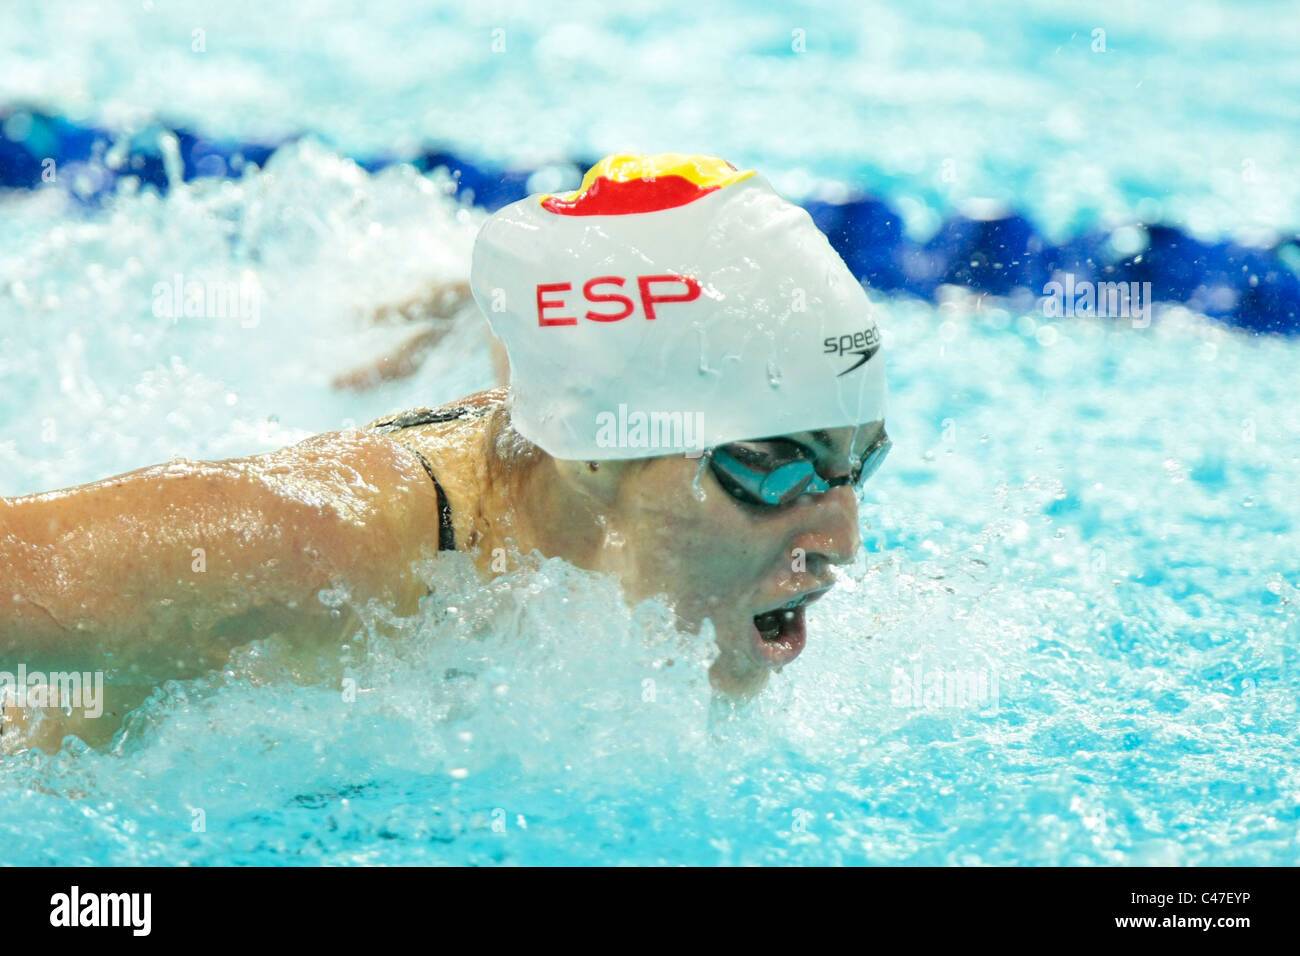 Anna Marti of Spain competing in the Women's 100m Butterfly Finals. - Stock Image